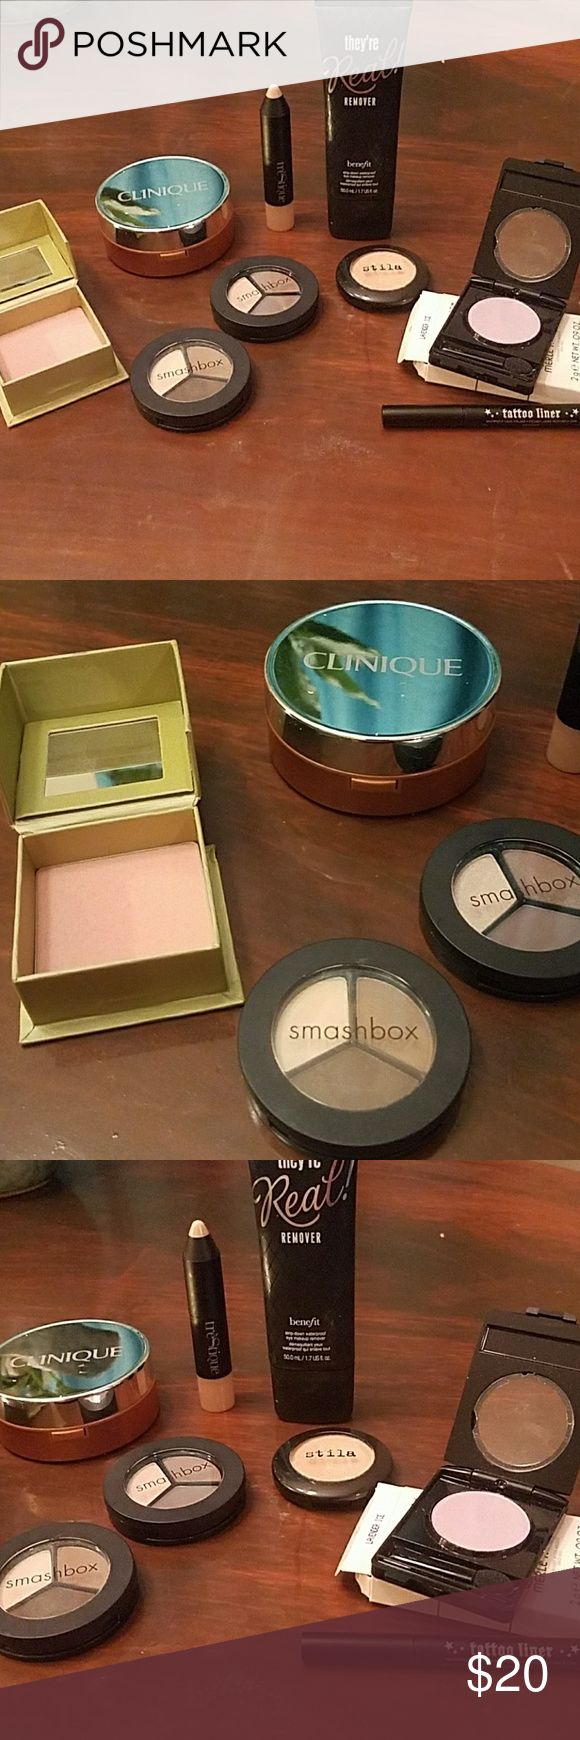 2 Brandnew 7 gently used high end make up lot 1 brand new Merle NORMAN eyeshadow in lavender ice 1 brand new Kat von d Tattoo liner sample size   1 used benefit dandelion blush  1 used clinique loose powder bronzer  2 used smash box trios in cover shoot and filter  1 used trestique highlighting stick  1 used stila eye shadow in oasis  1 used benefit they're real waterproof make up remover Sephora Makeup